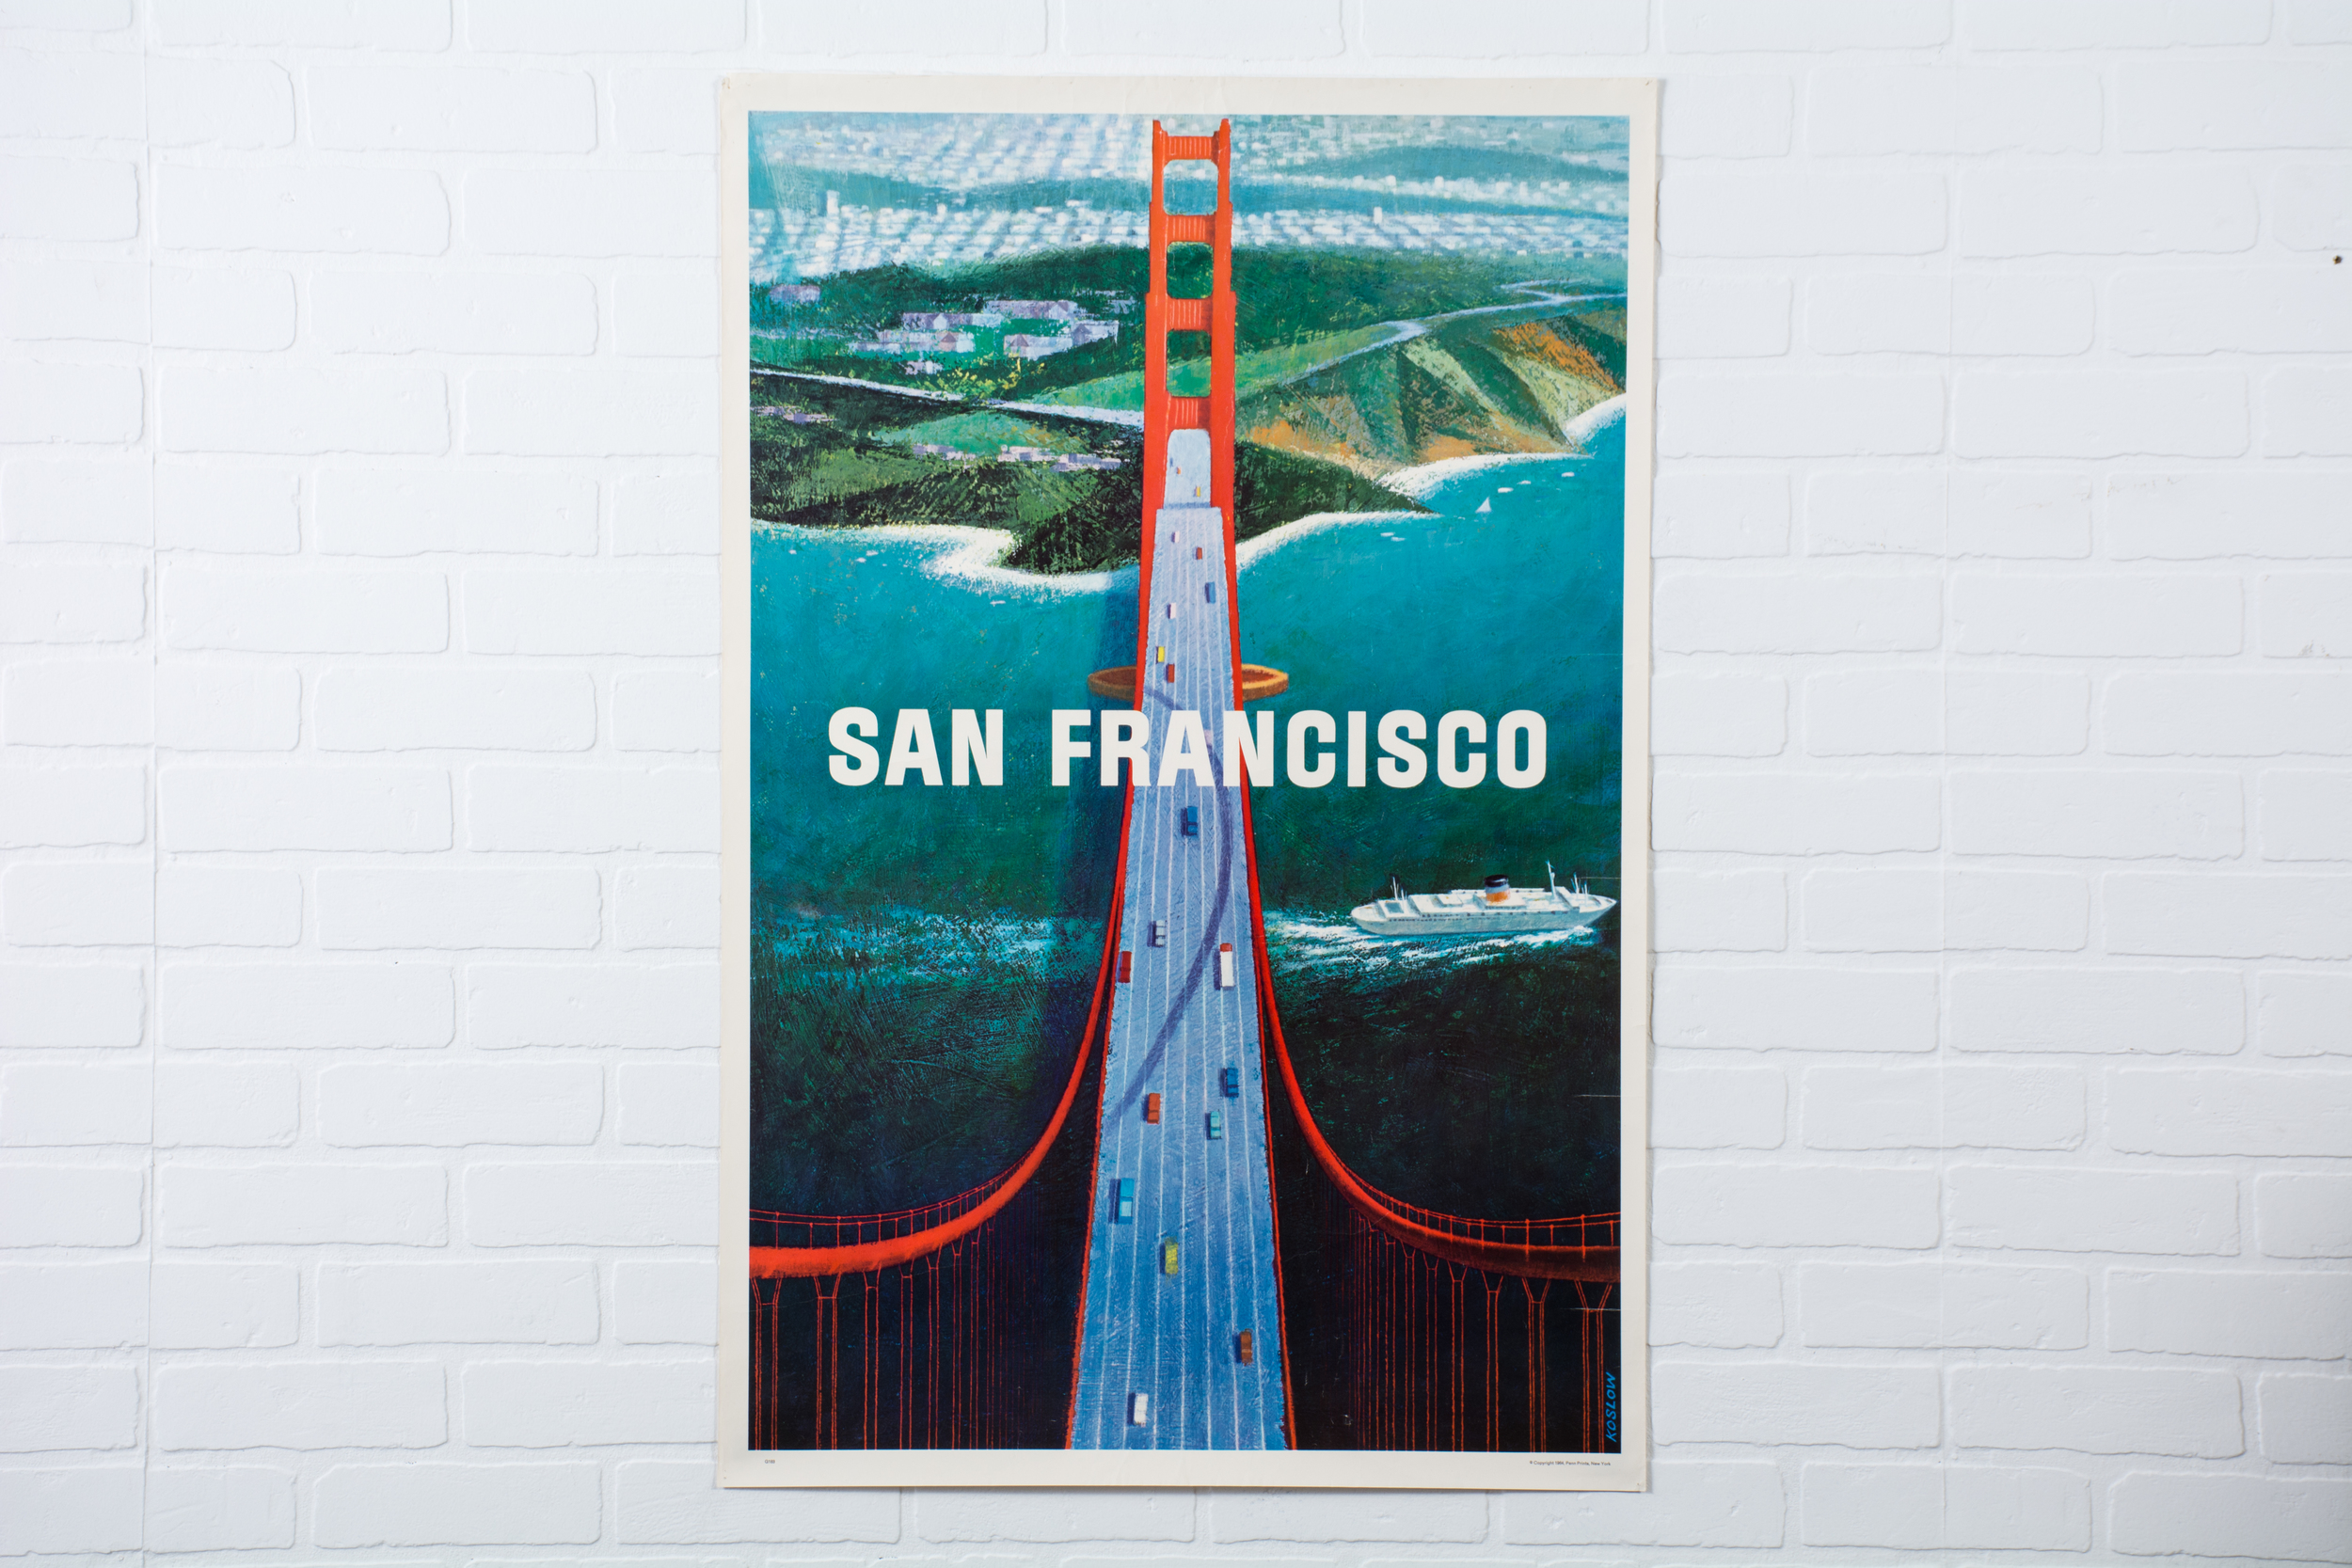 Rare Vintage San Francisco Poster by Howard Koslo, 1964